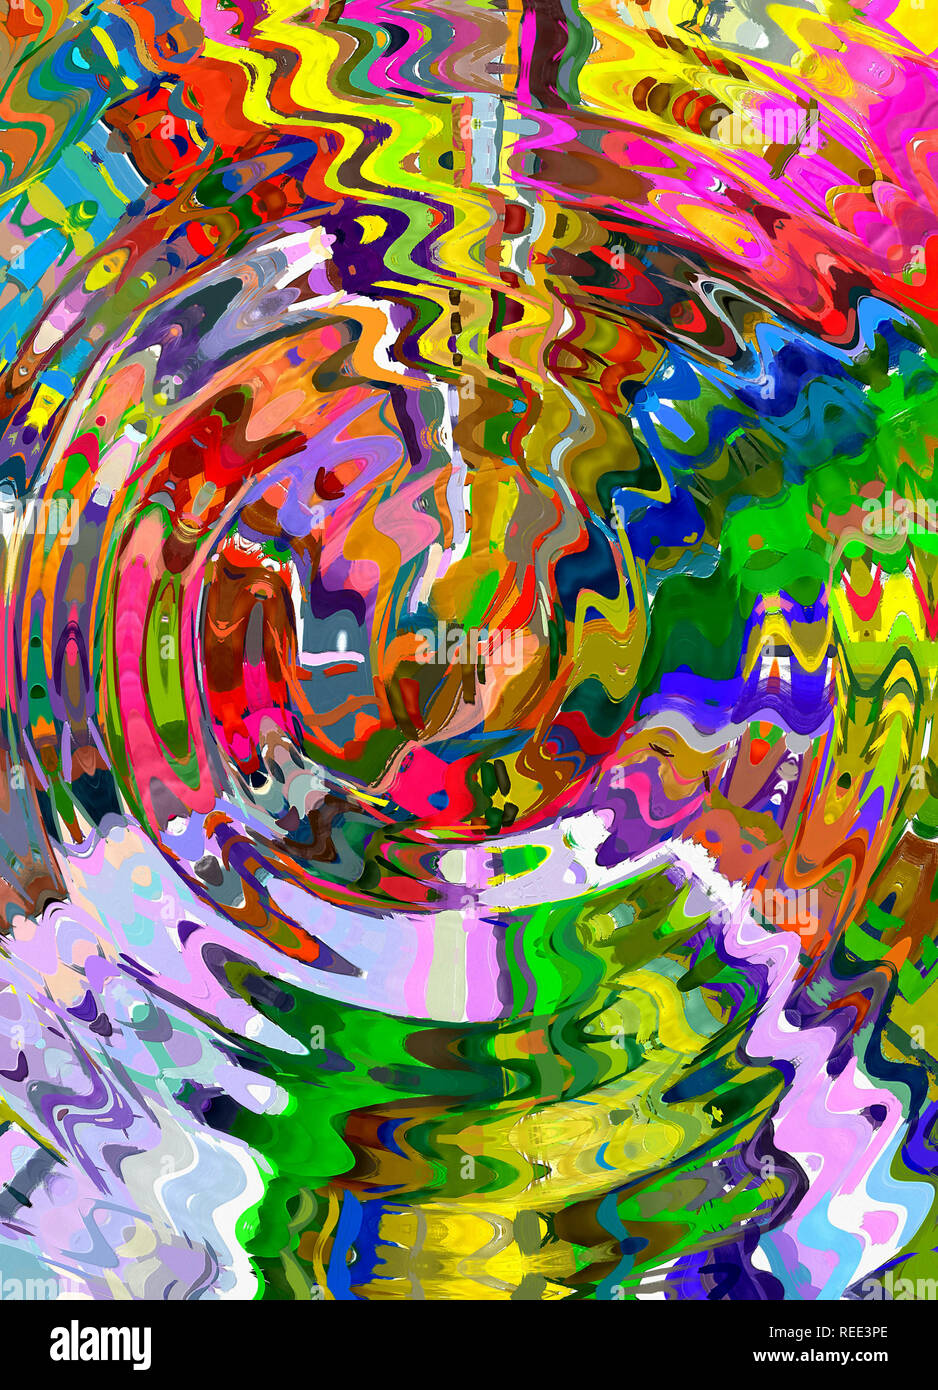 Graphic Painting Abstract Creative Background In Liquid Oil Style Digital Creating Design Pattern For Decoration Cover Web Banner Card Invitation Stock Photo Alamy